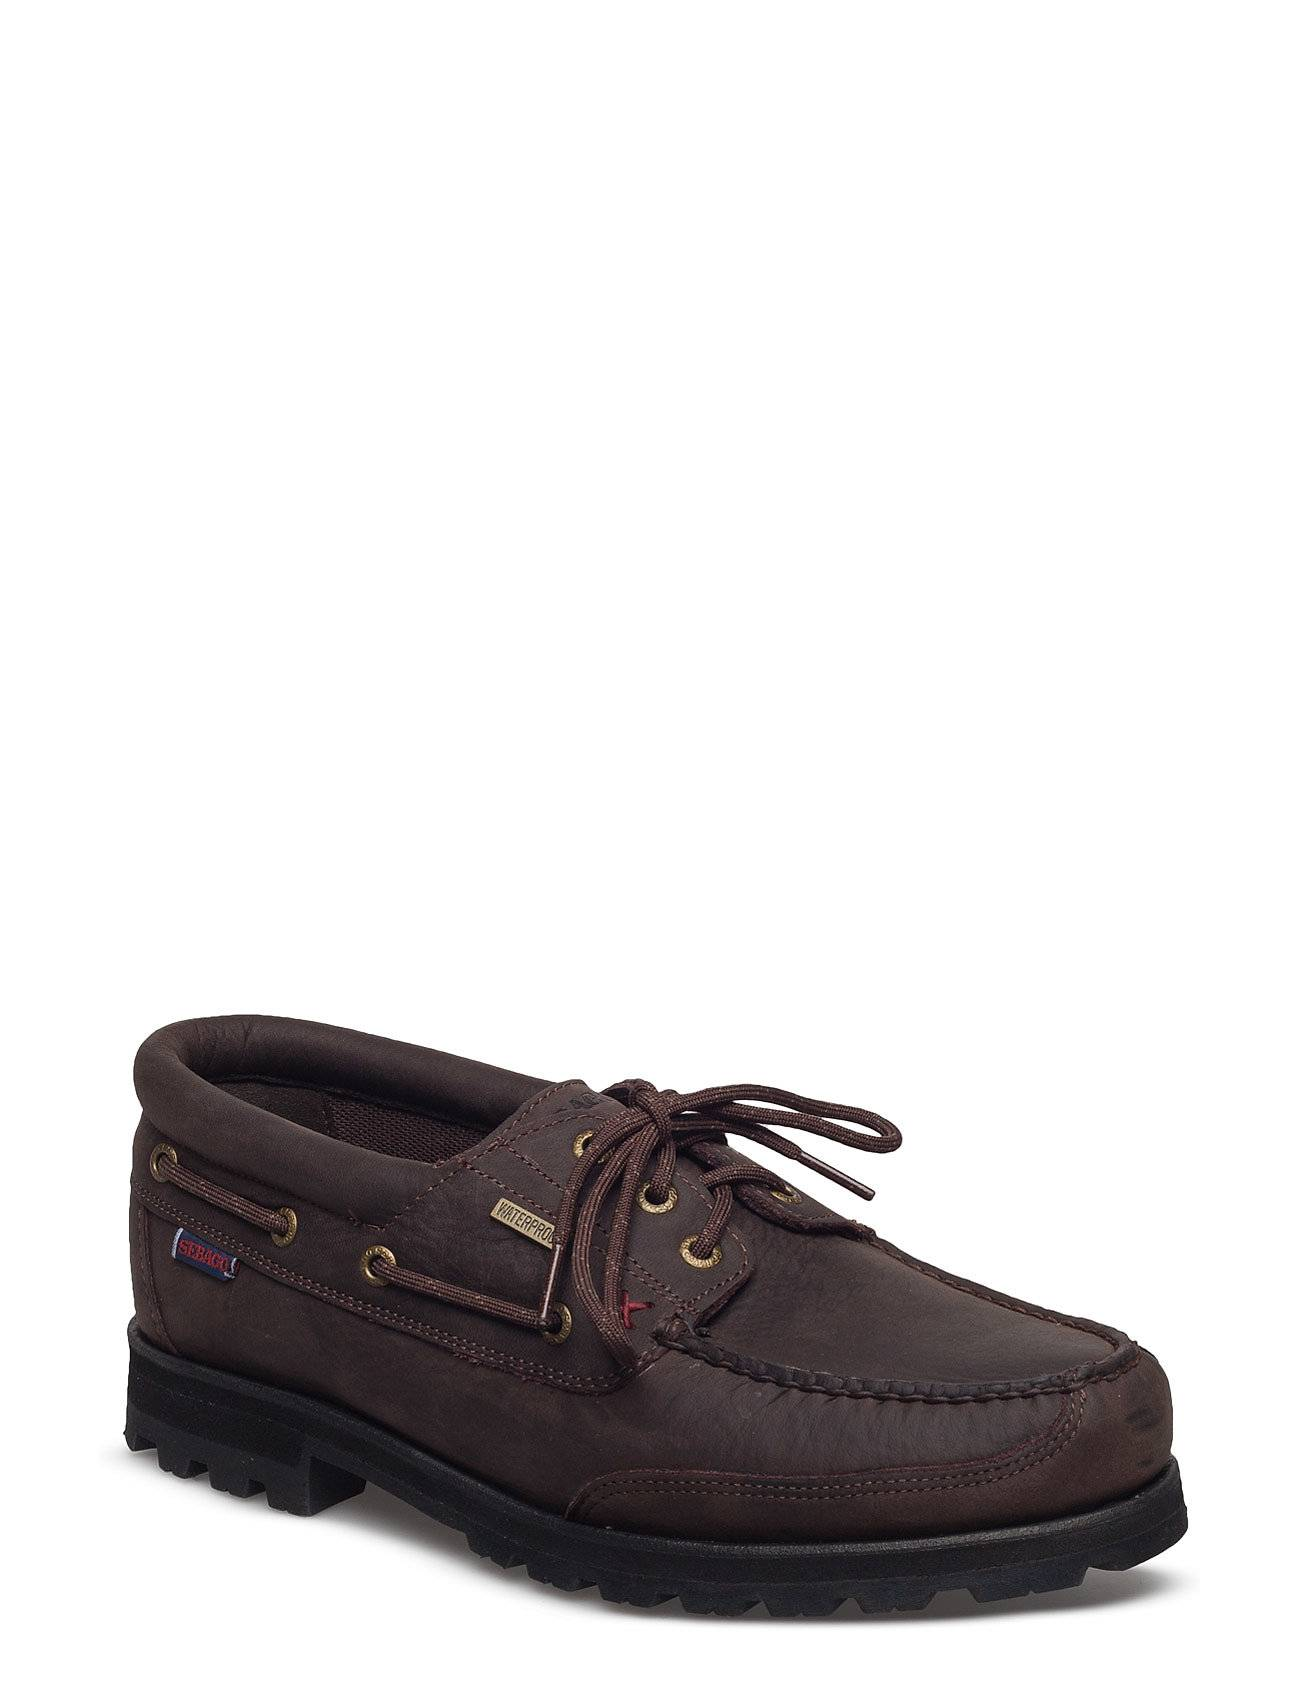 Sebago Vershire Three Eye Wp